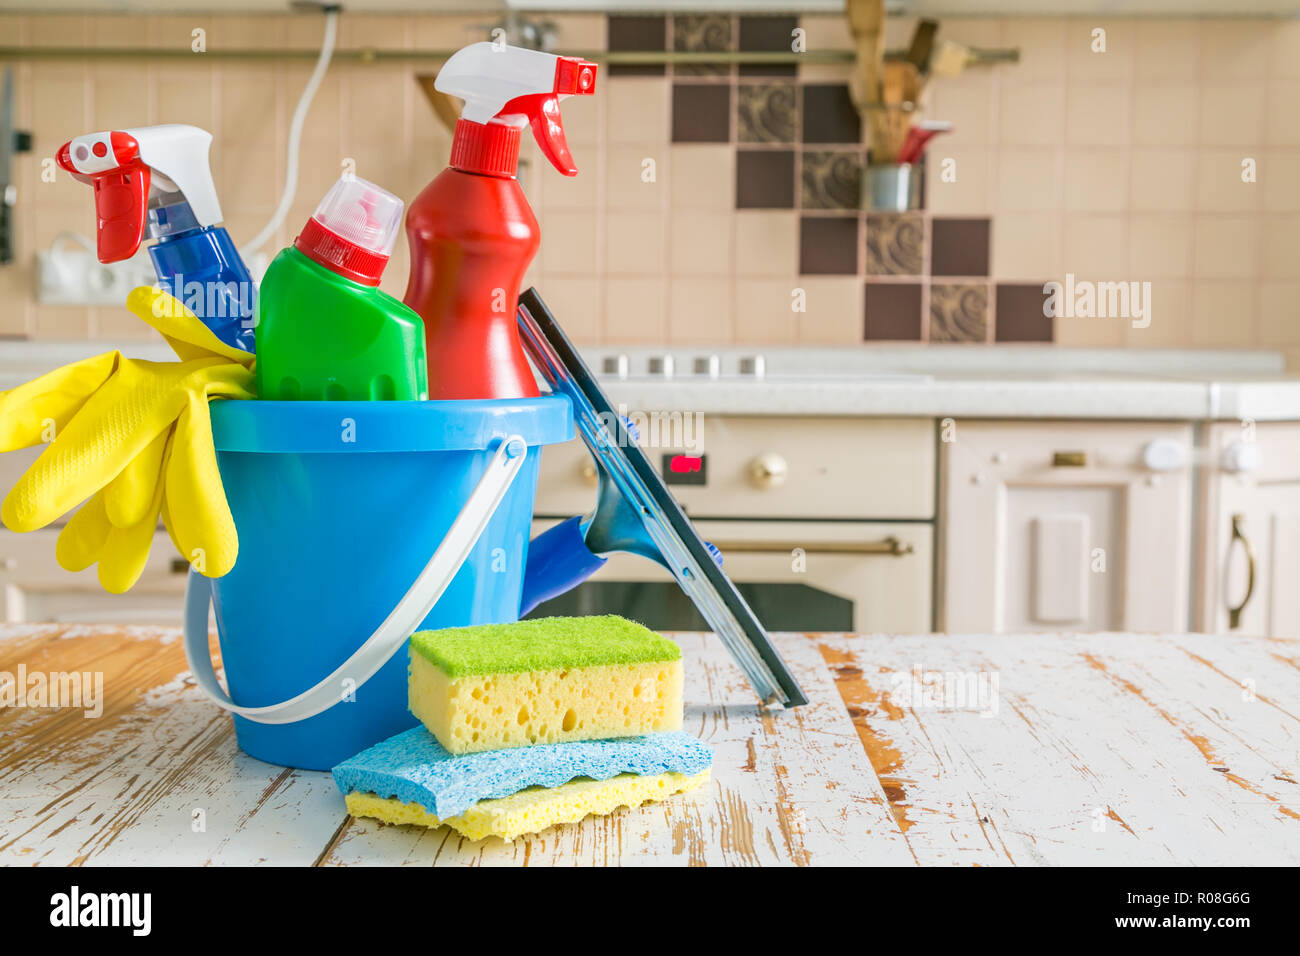 Cleaning concept - cleaning supplies, gloves, bottles on ...